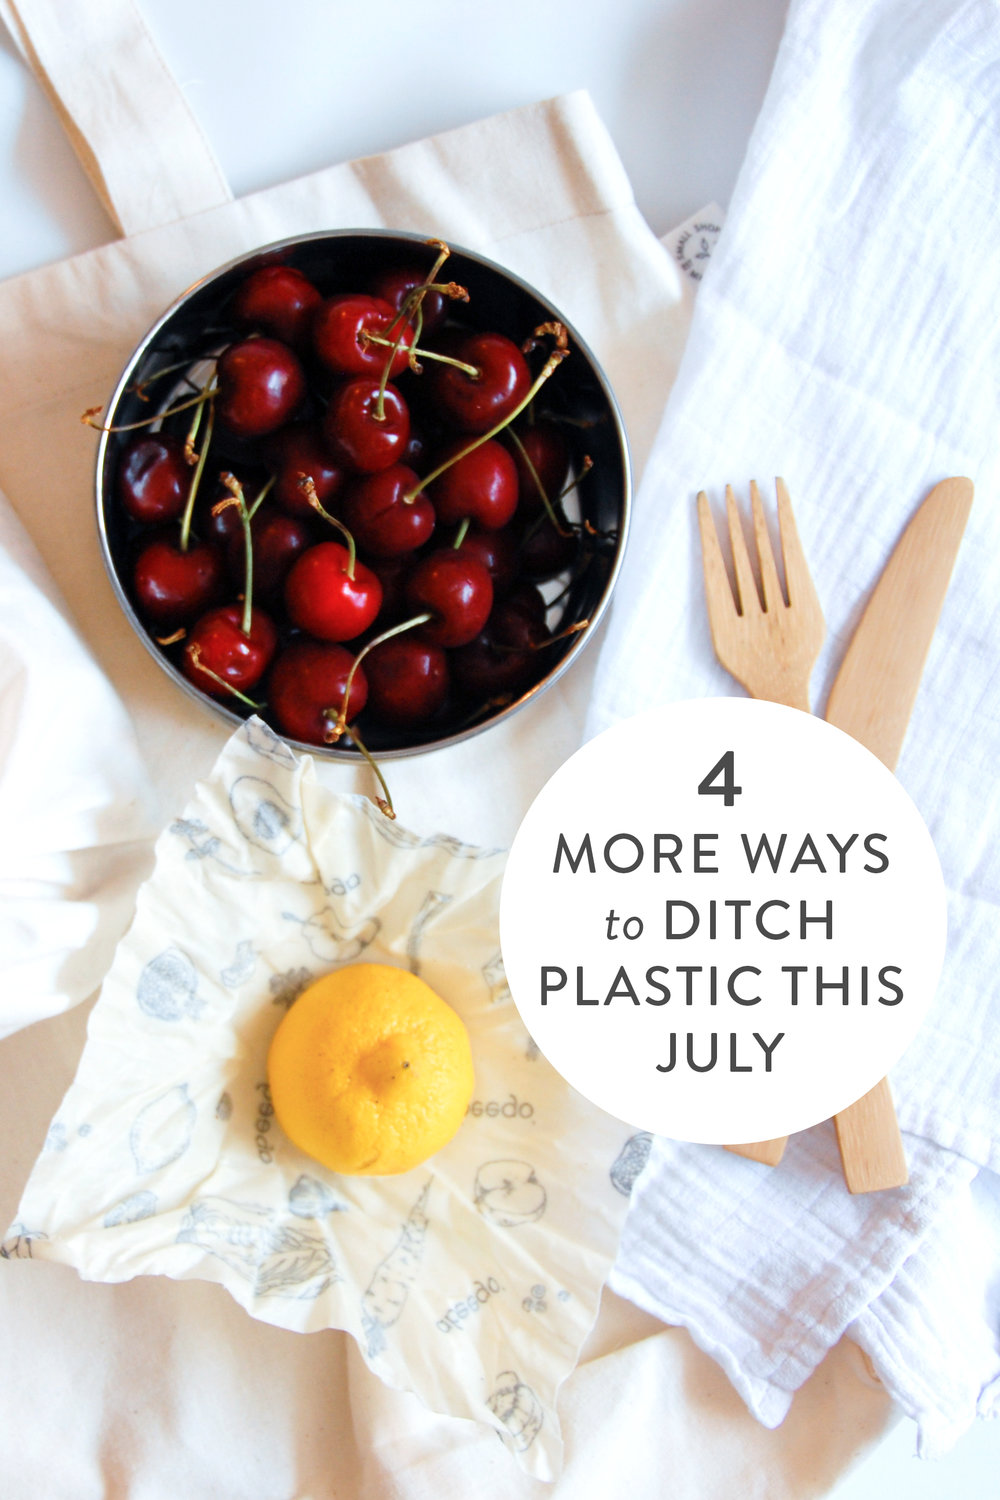 4 More Ways to Ditch Plastic This July